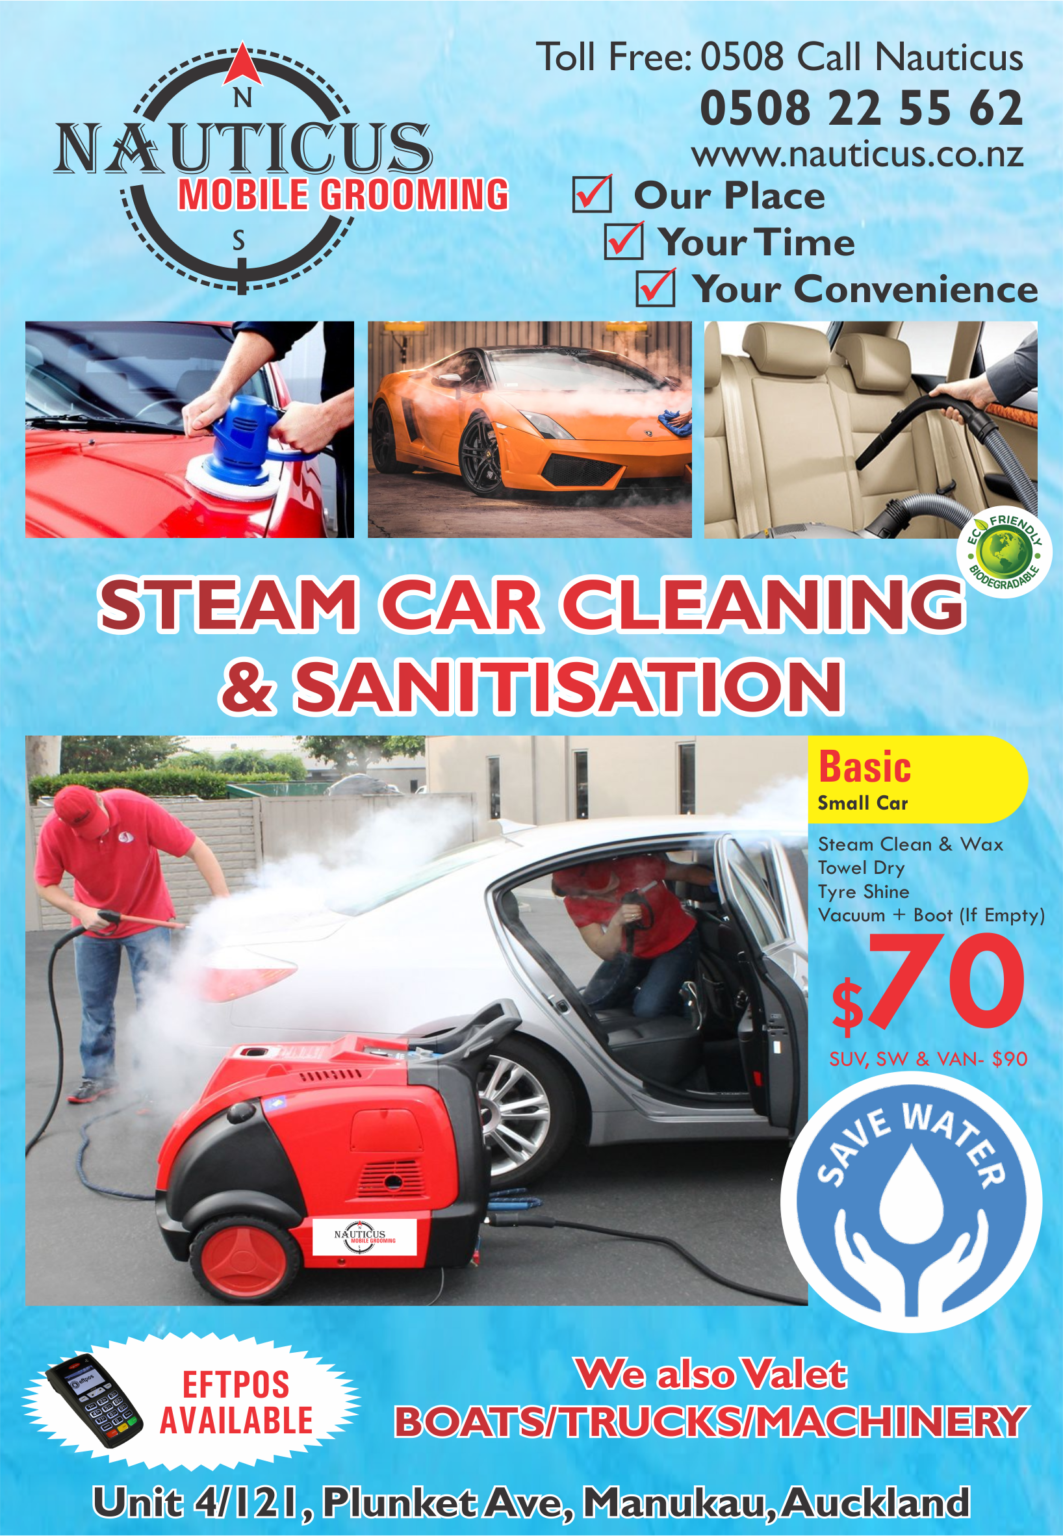 STEAM CAR CLEANING